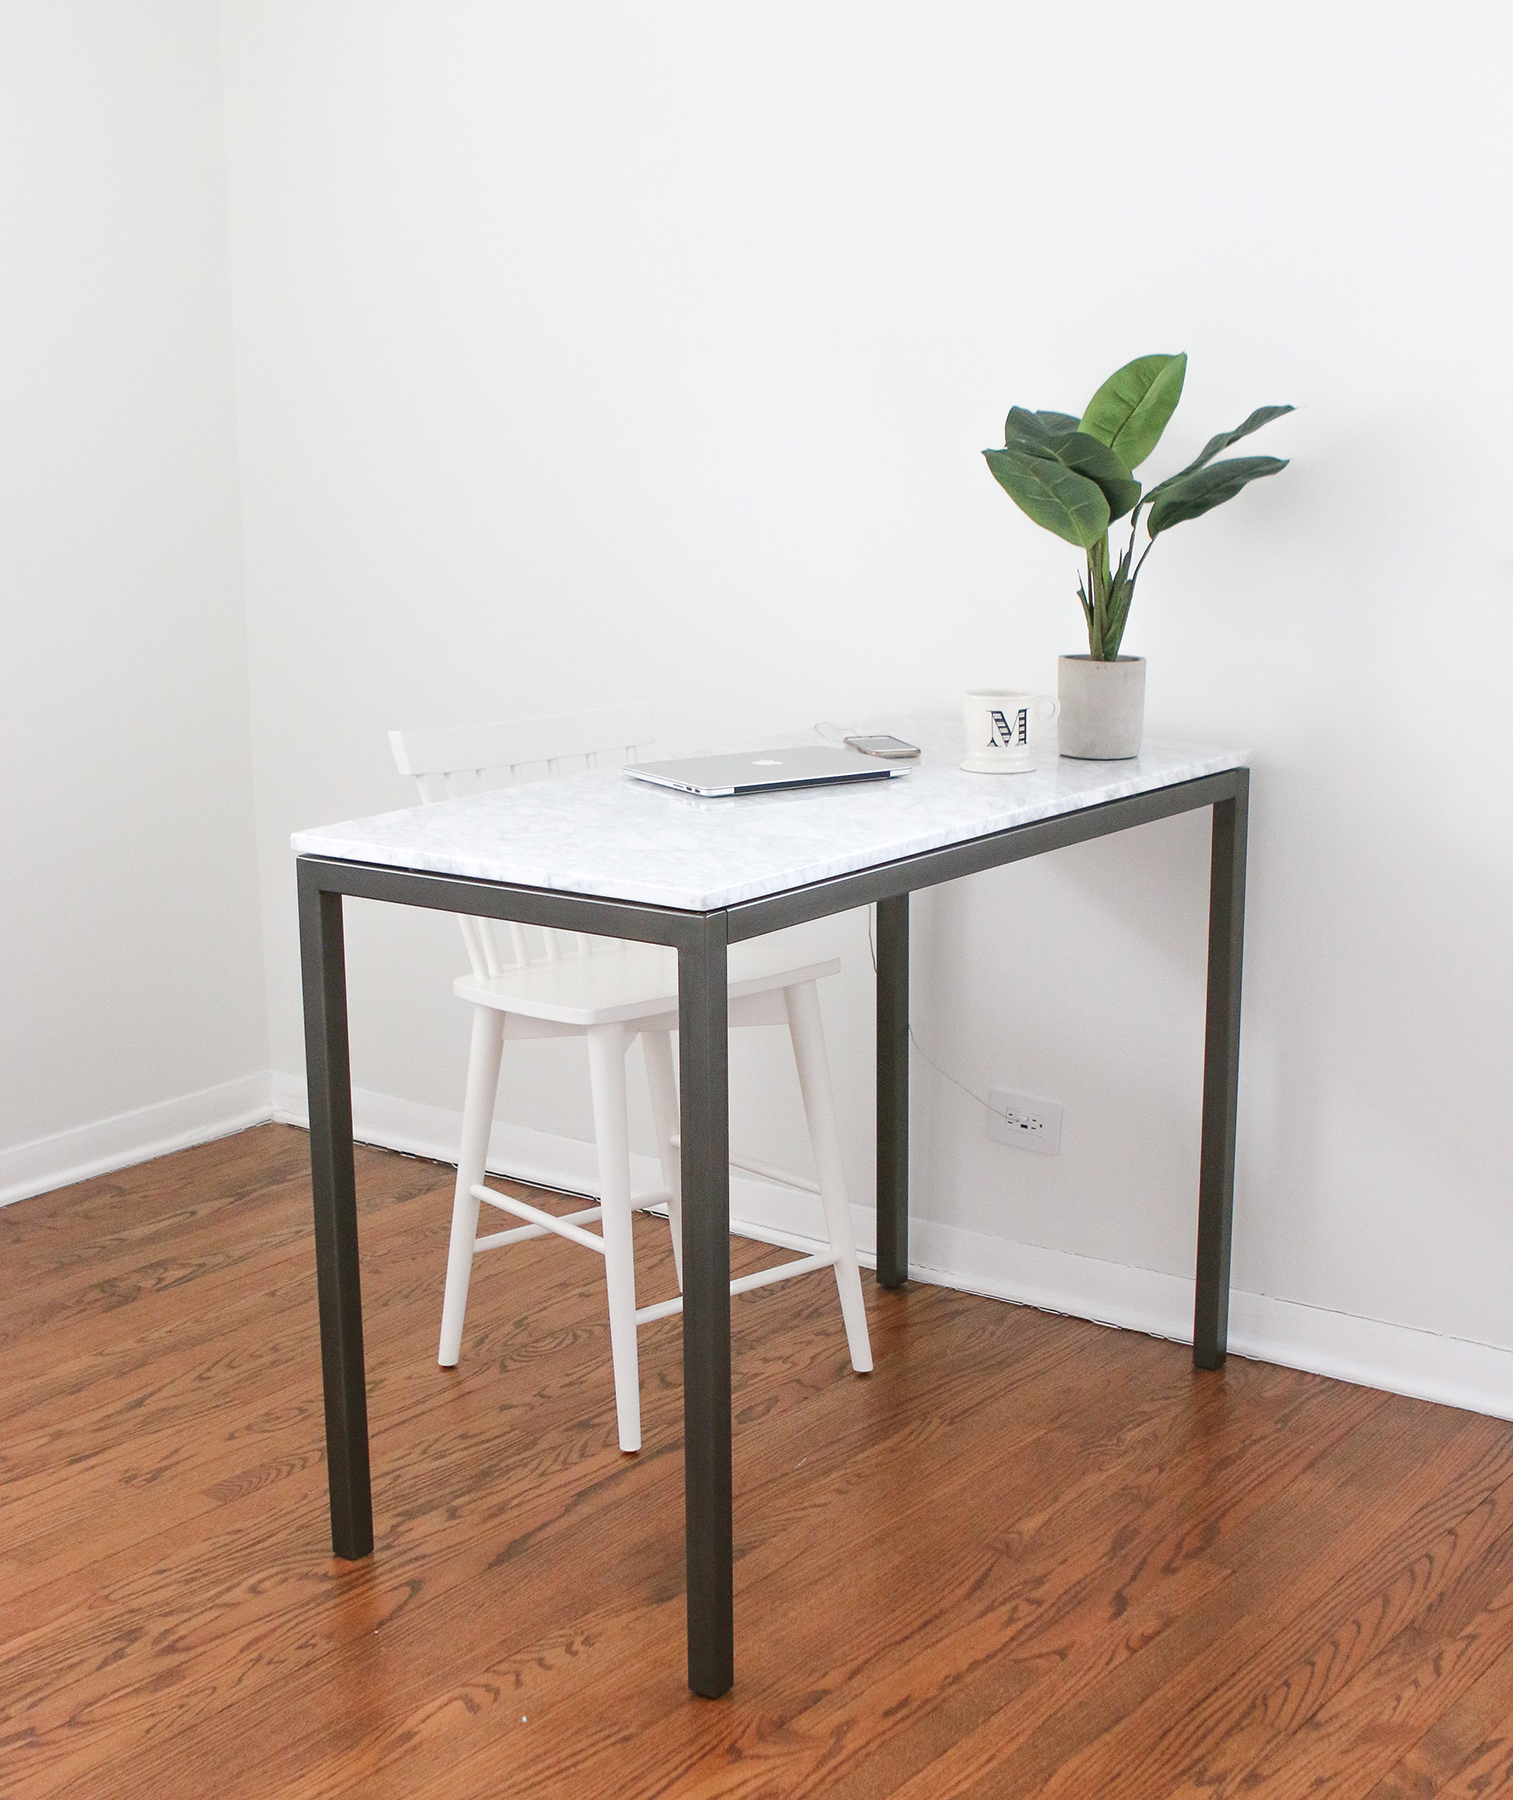 Plain white room with desk